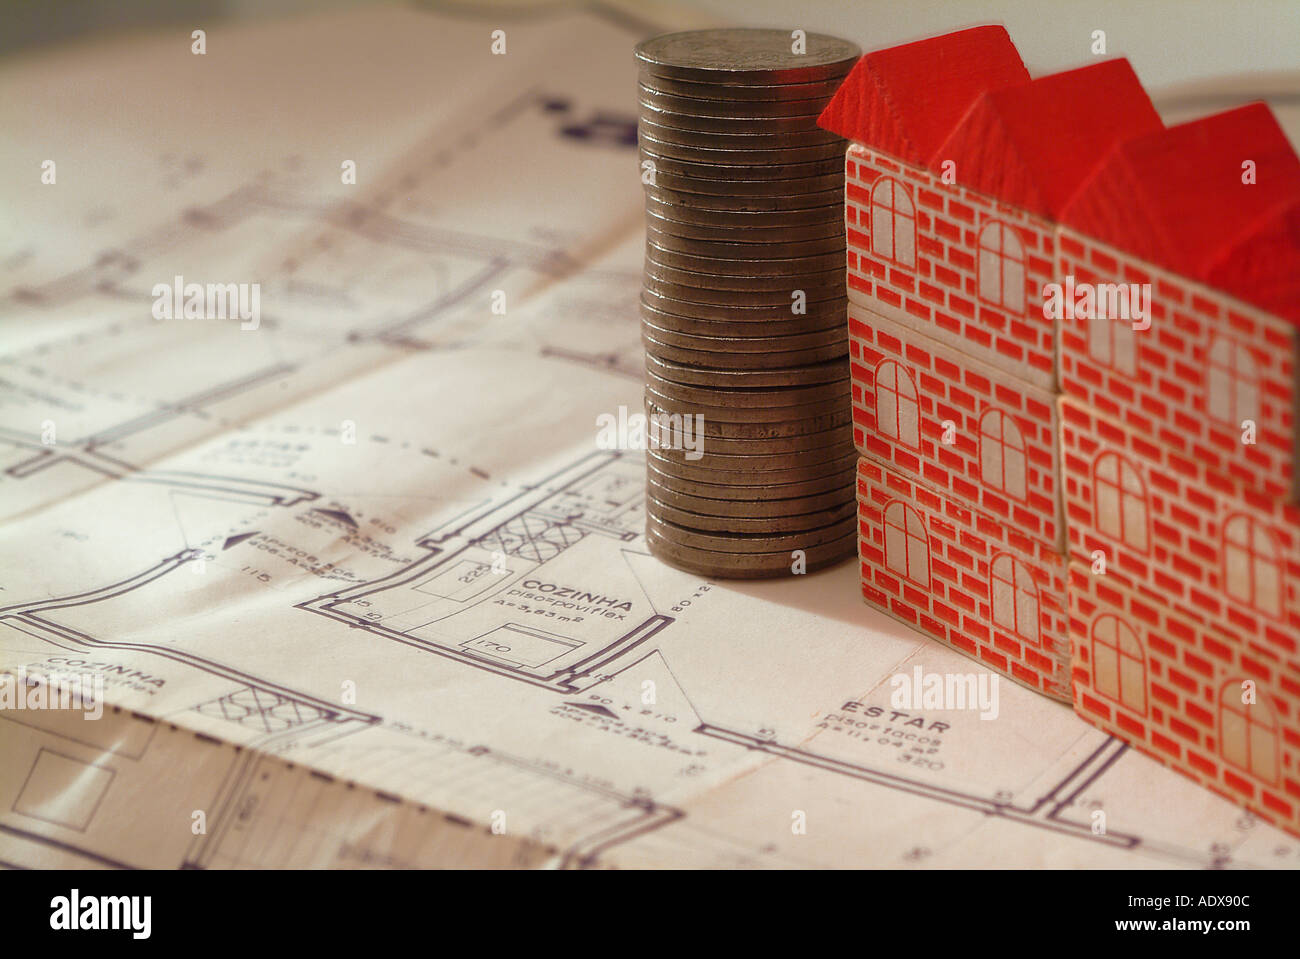 Architecture blueprint blocks toy model building red roof plan architecture blueprint blocks toy model building red roof plan scheme diagram project concept conceptual background stack pile malvernweather Image collections